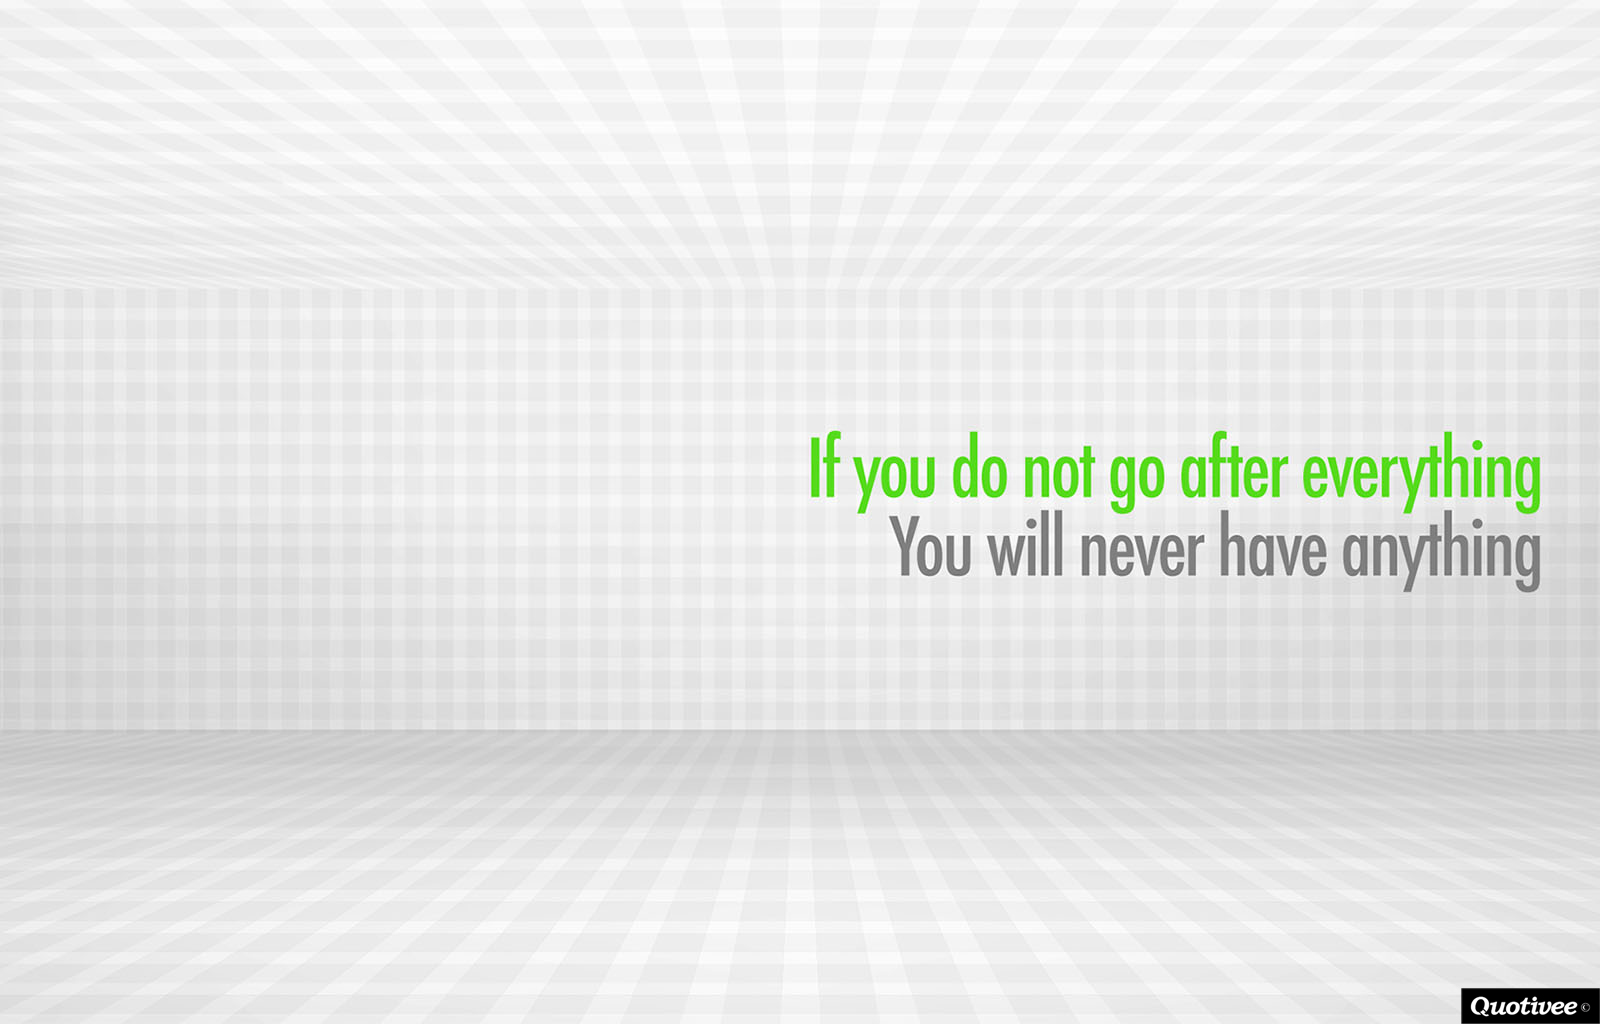 quote_wallpaper_1600x1024_0001_Group 24